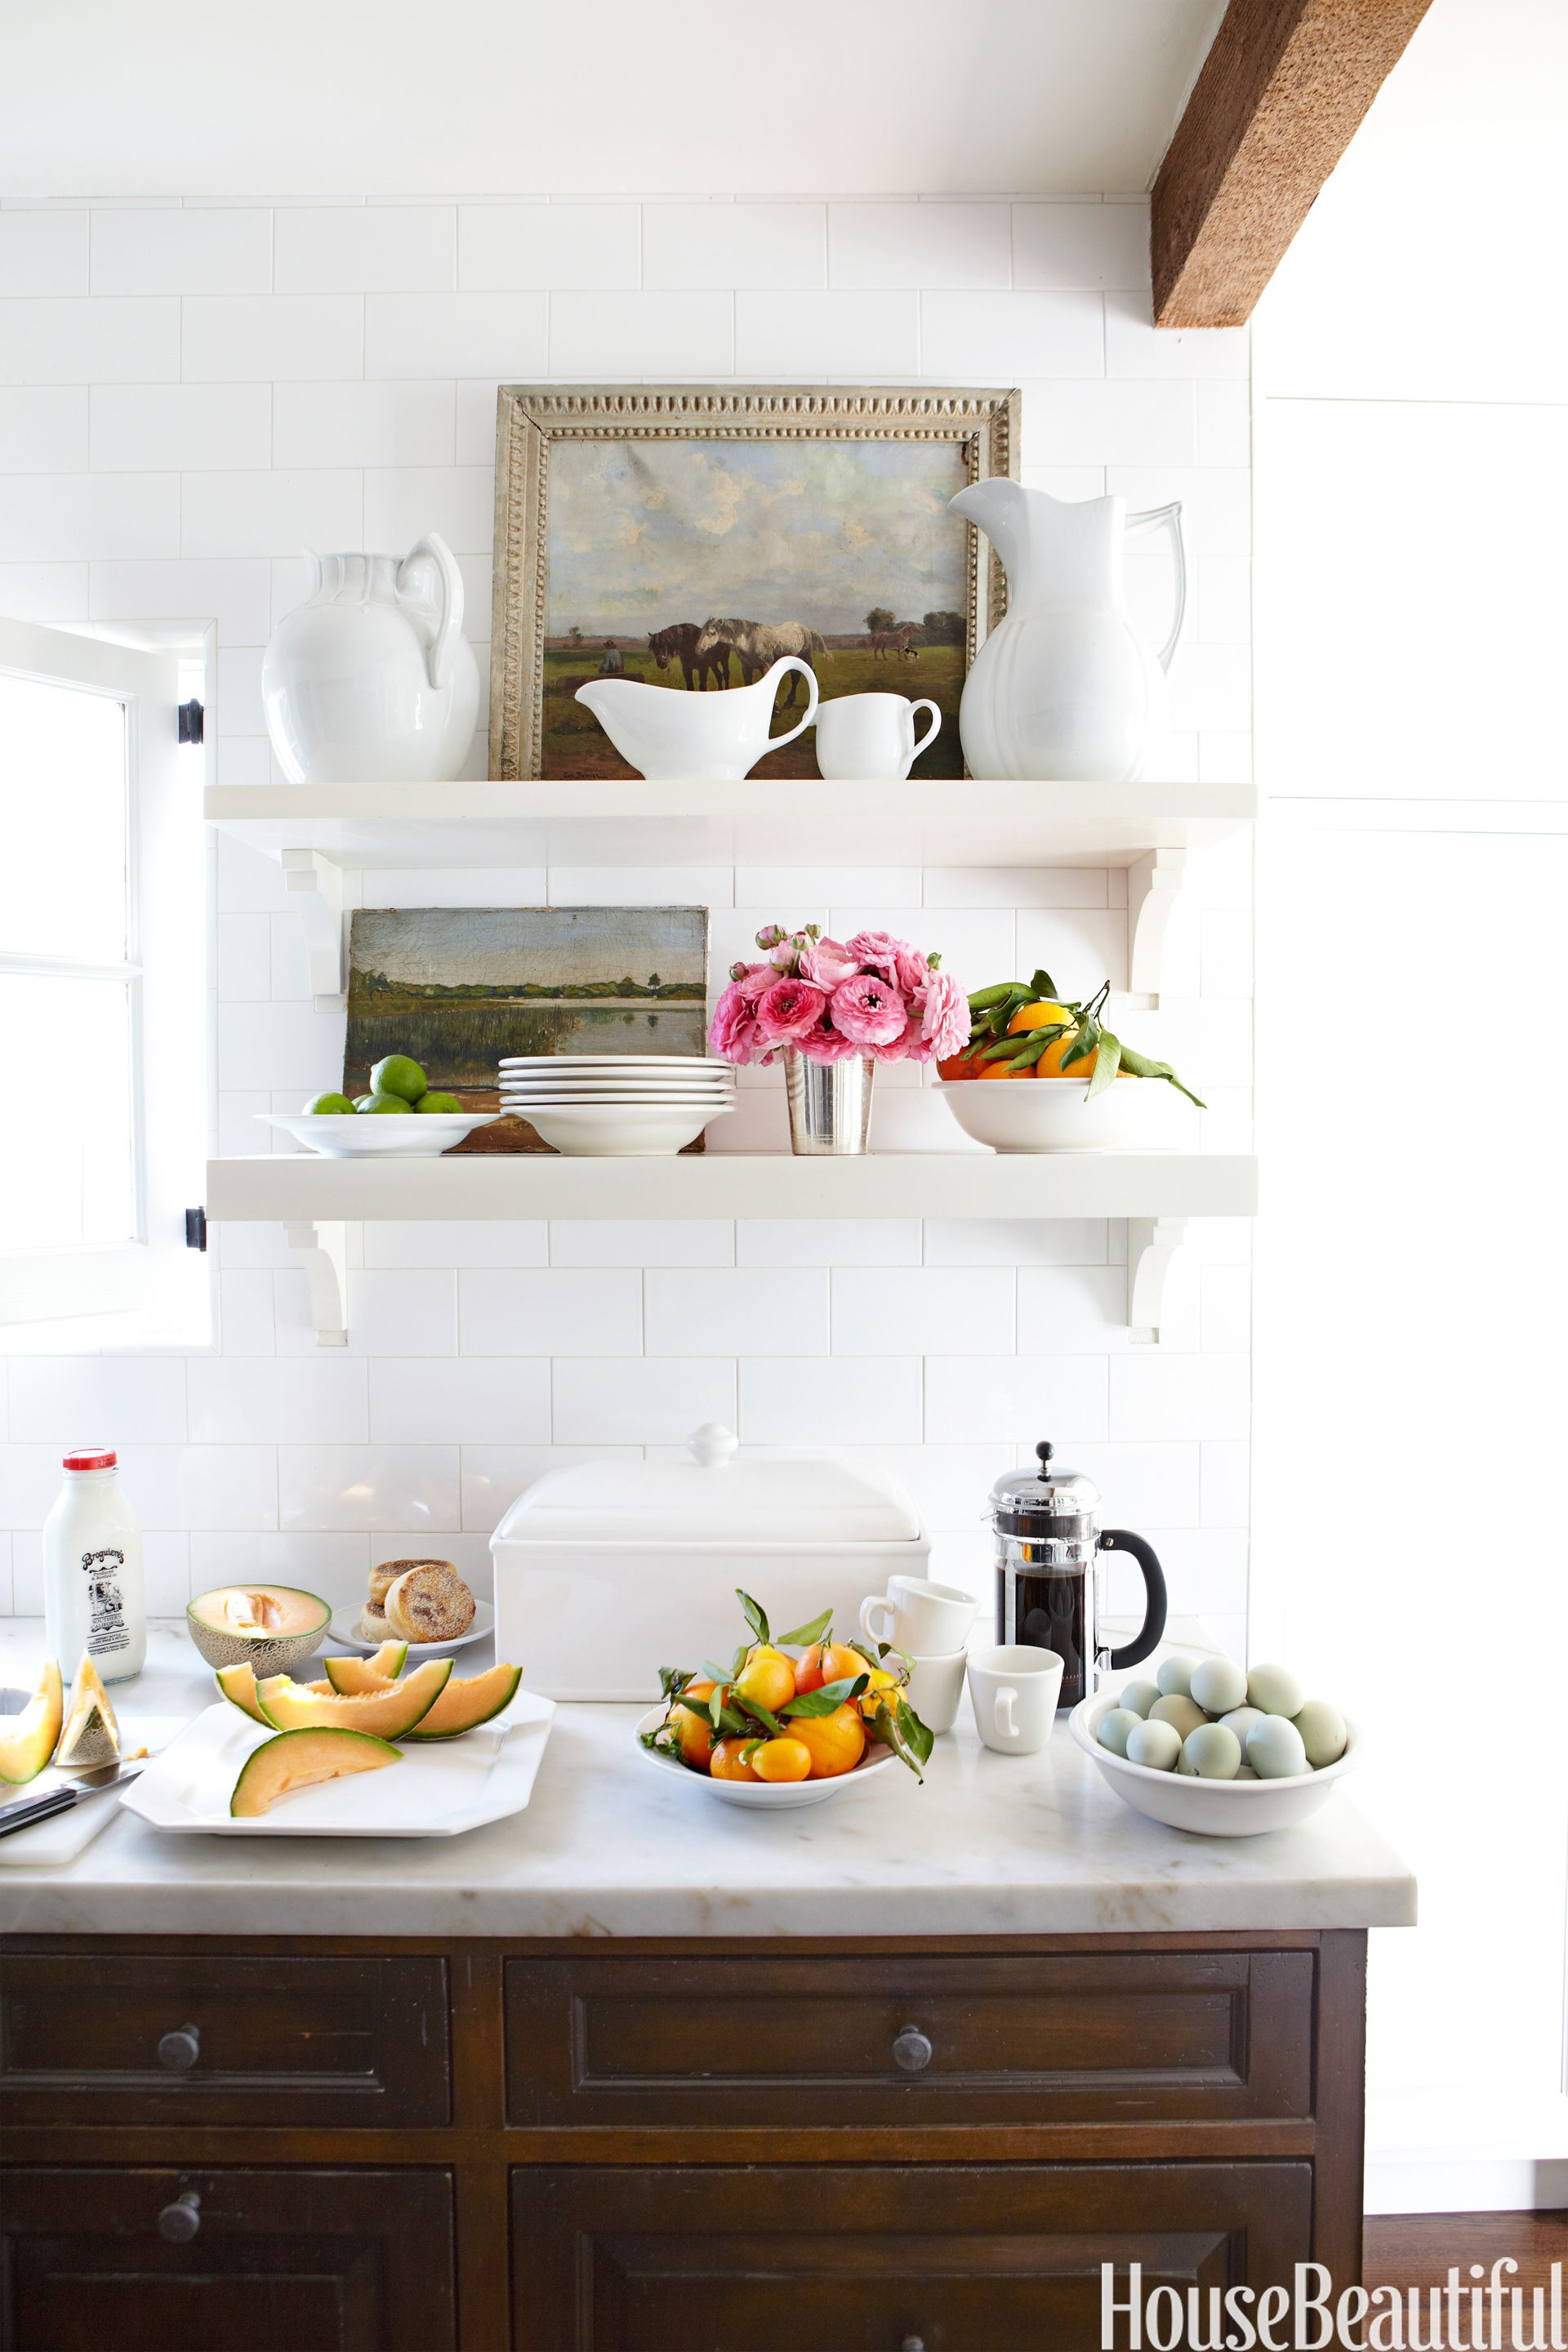 white kitchen shelves & How to Declutter a Small Room - Organizing Ideas for Small Spaces